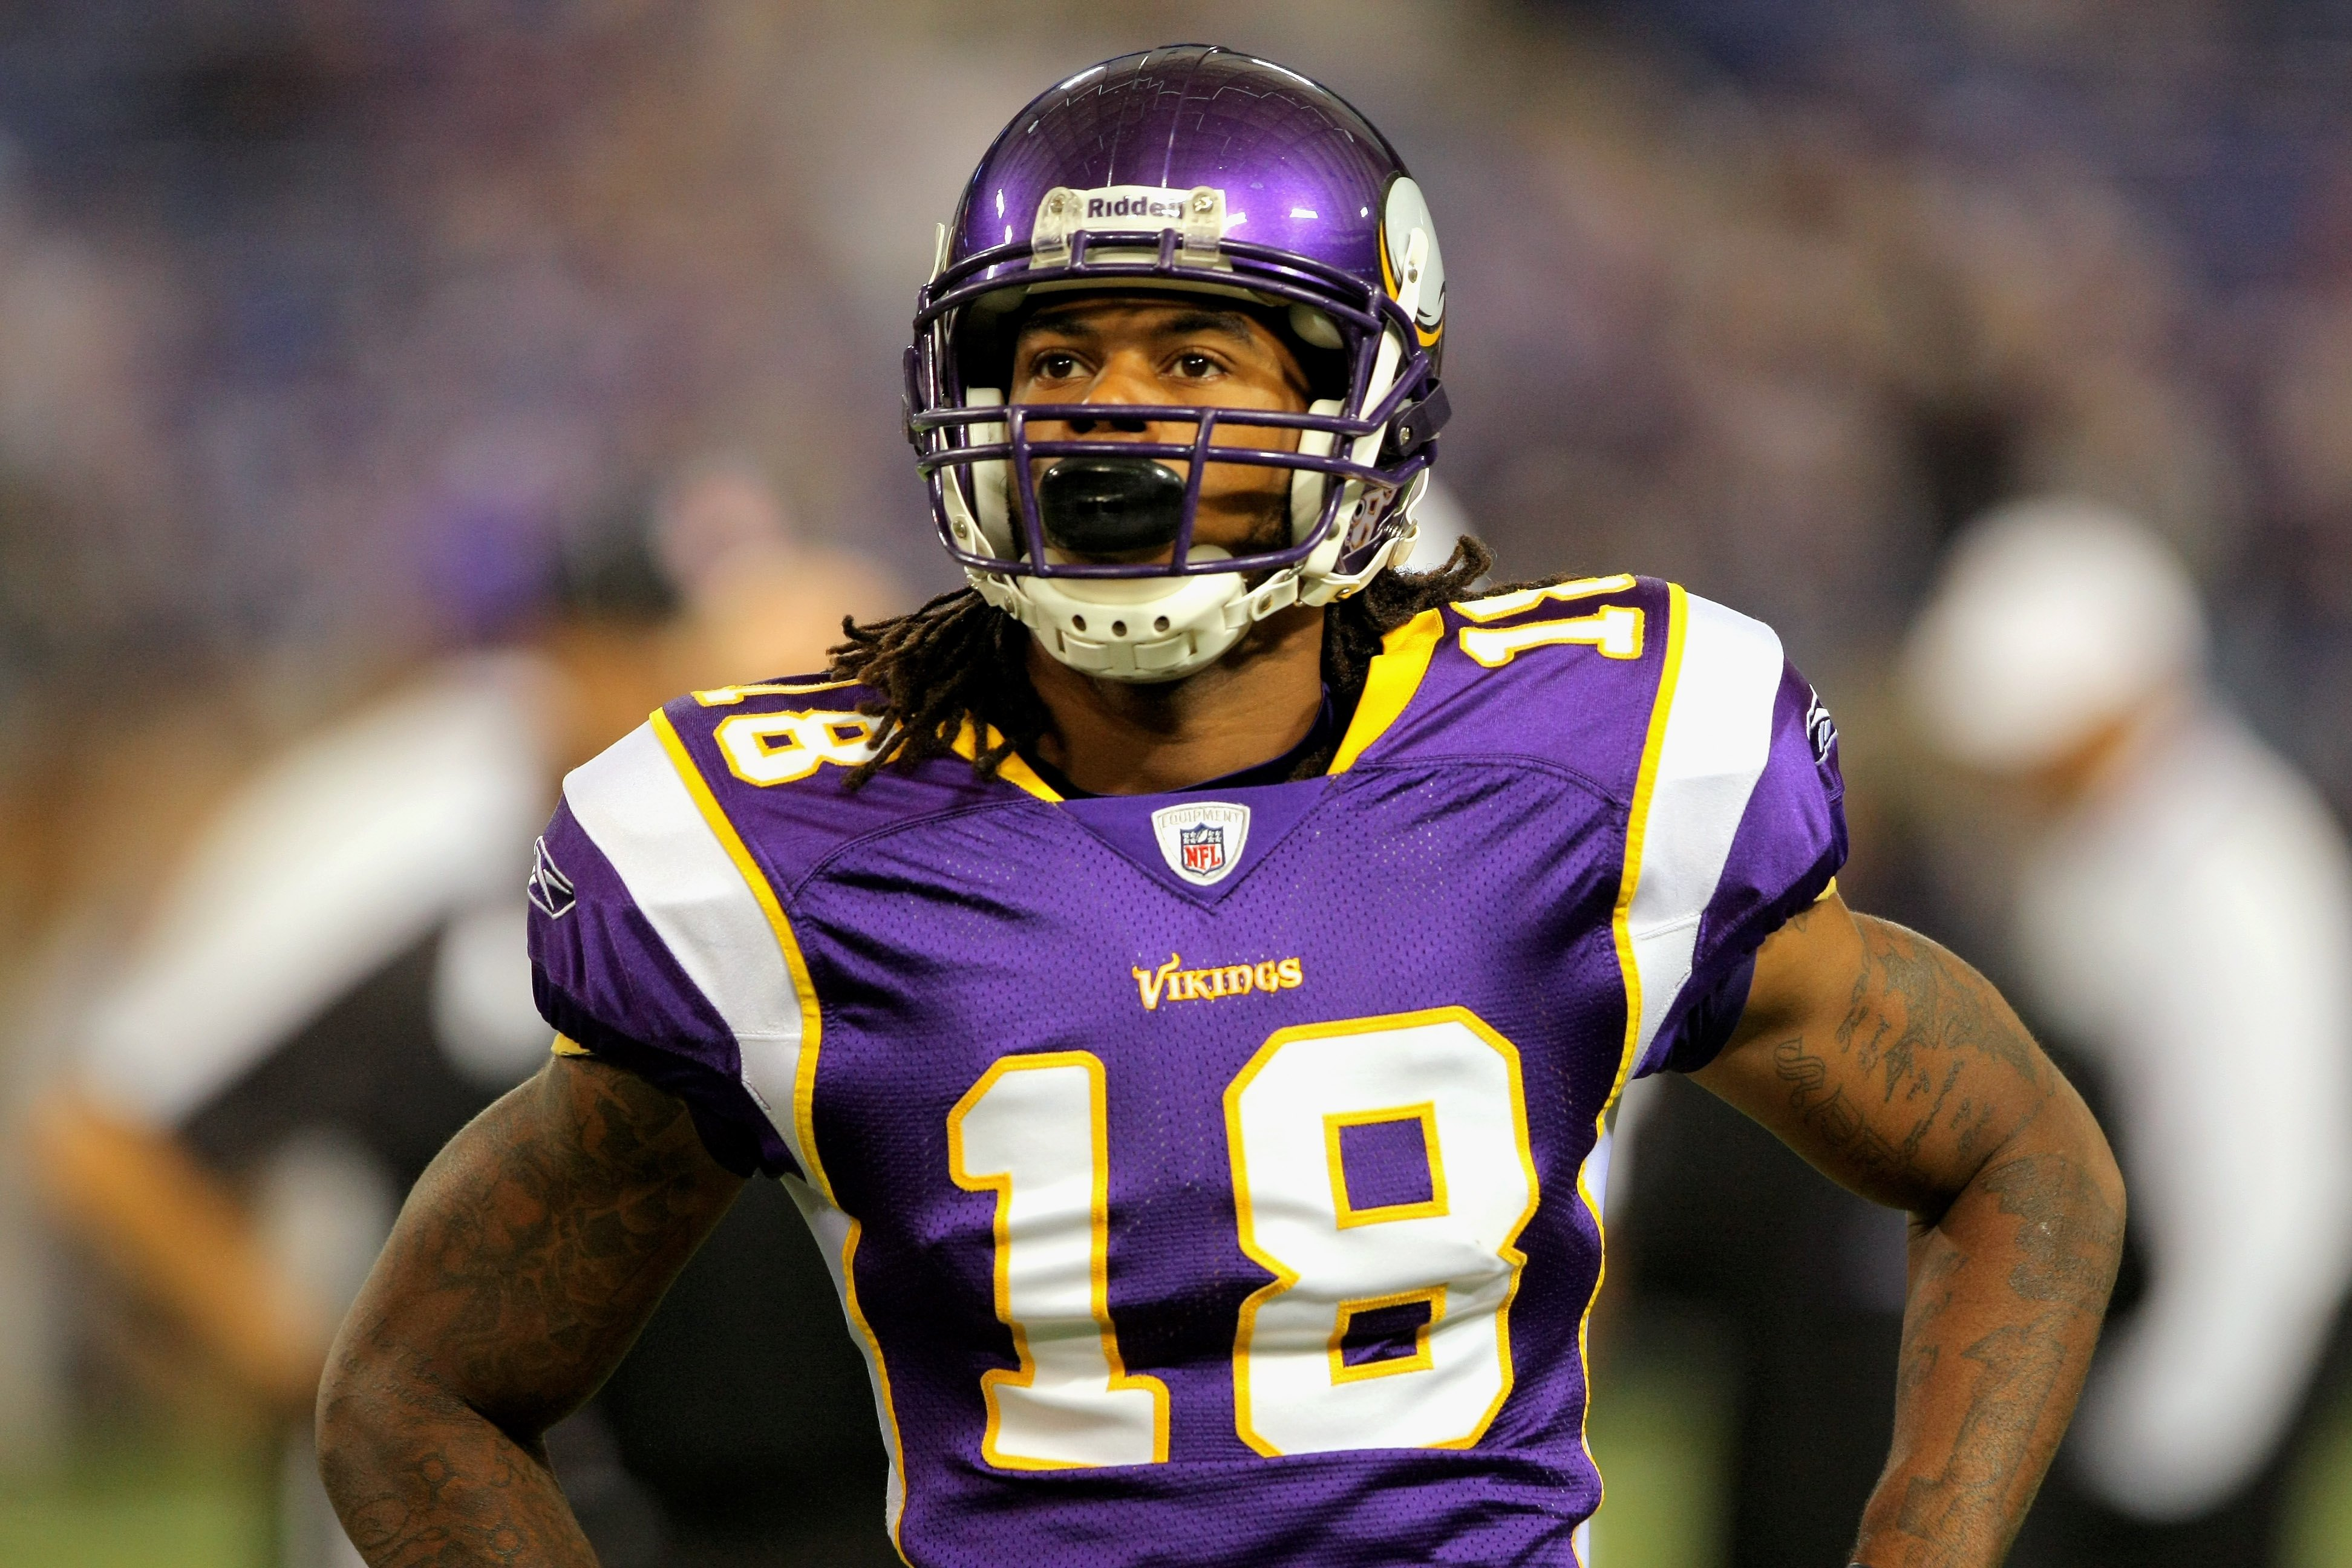 MINNEAPOLIS - OCTOBER 18:  Wide reciever Sidney Rice #18 of the Minnesota Vikings prepares to face the Baltimore Ravens during NFL action at Hubert H. Humphrey Metrodome on October 18, 2009 in Minneapolis, Minnesota. The Vikings defeated the Ravens 33-31.